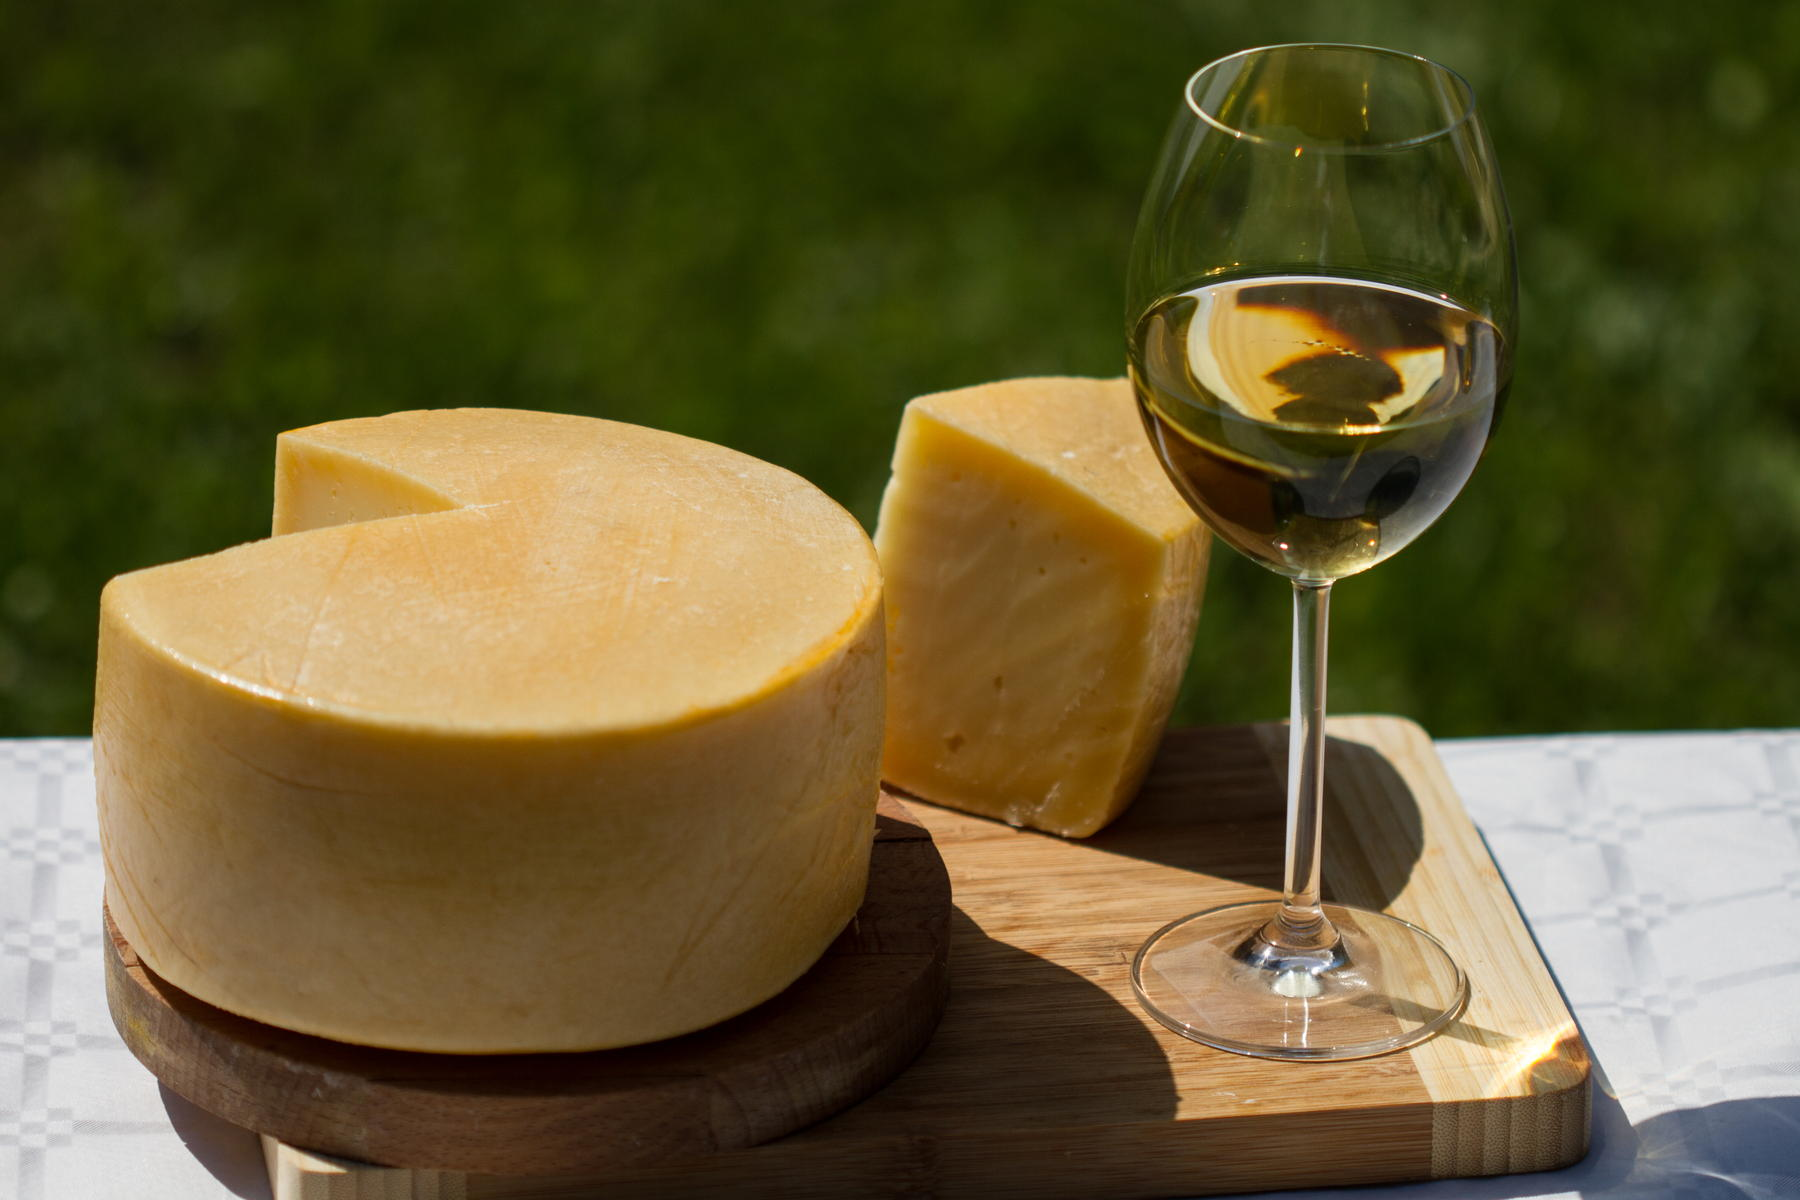 Livno Cheese will soon be found on the shelves of European shops © Andrija Vrdoljak